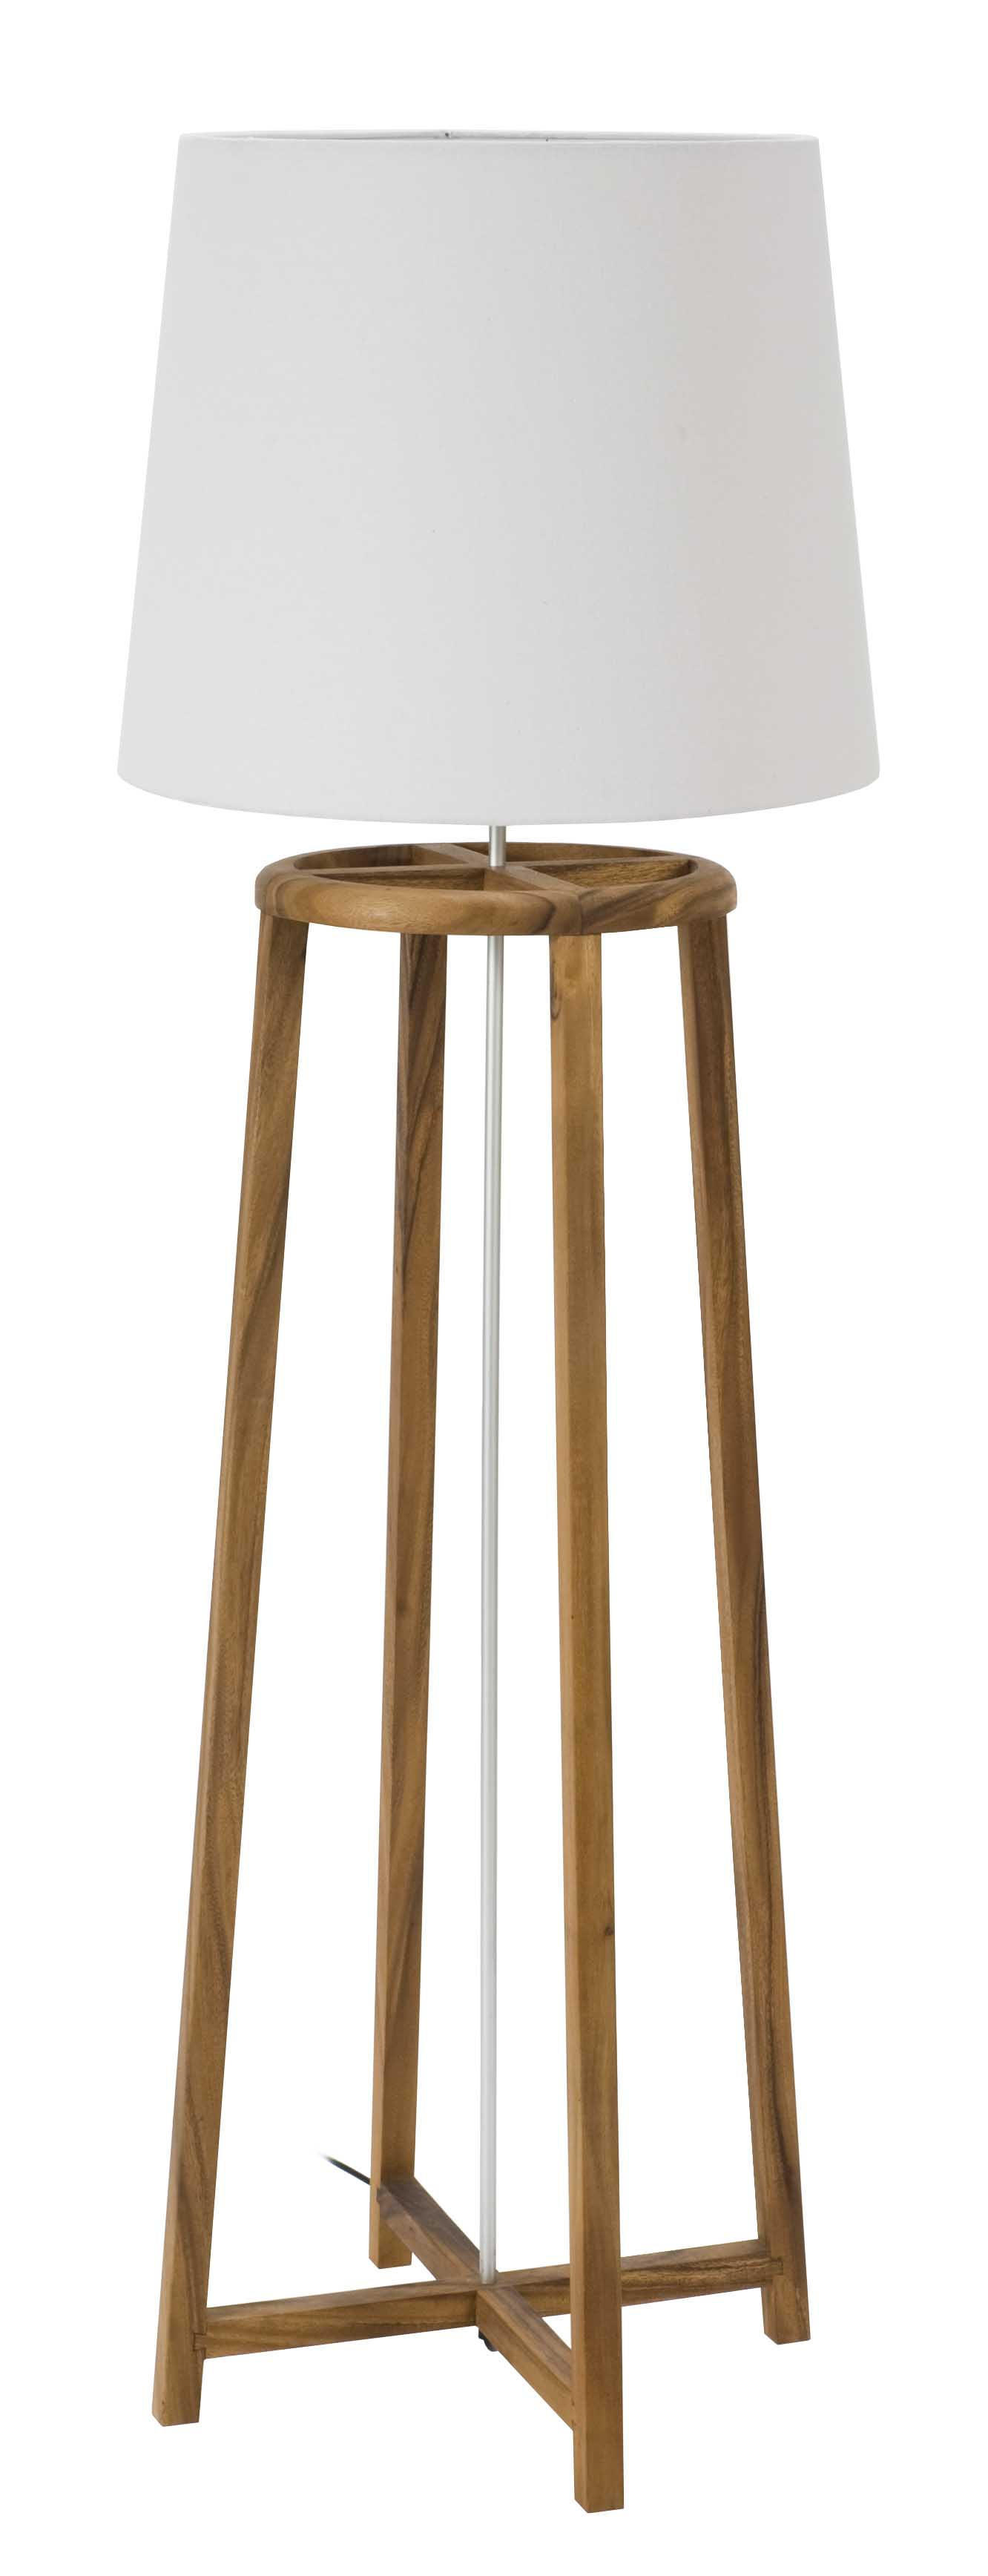 Conical 5545cm lamp shade pr home 5545cm lamp shade tower floor lamp coffee natural white aloadofball Choice Image